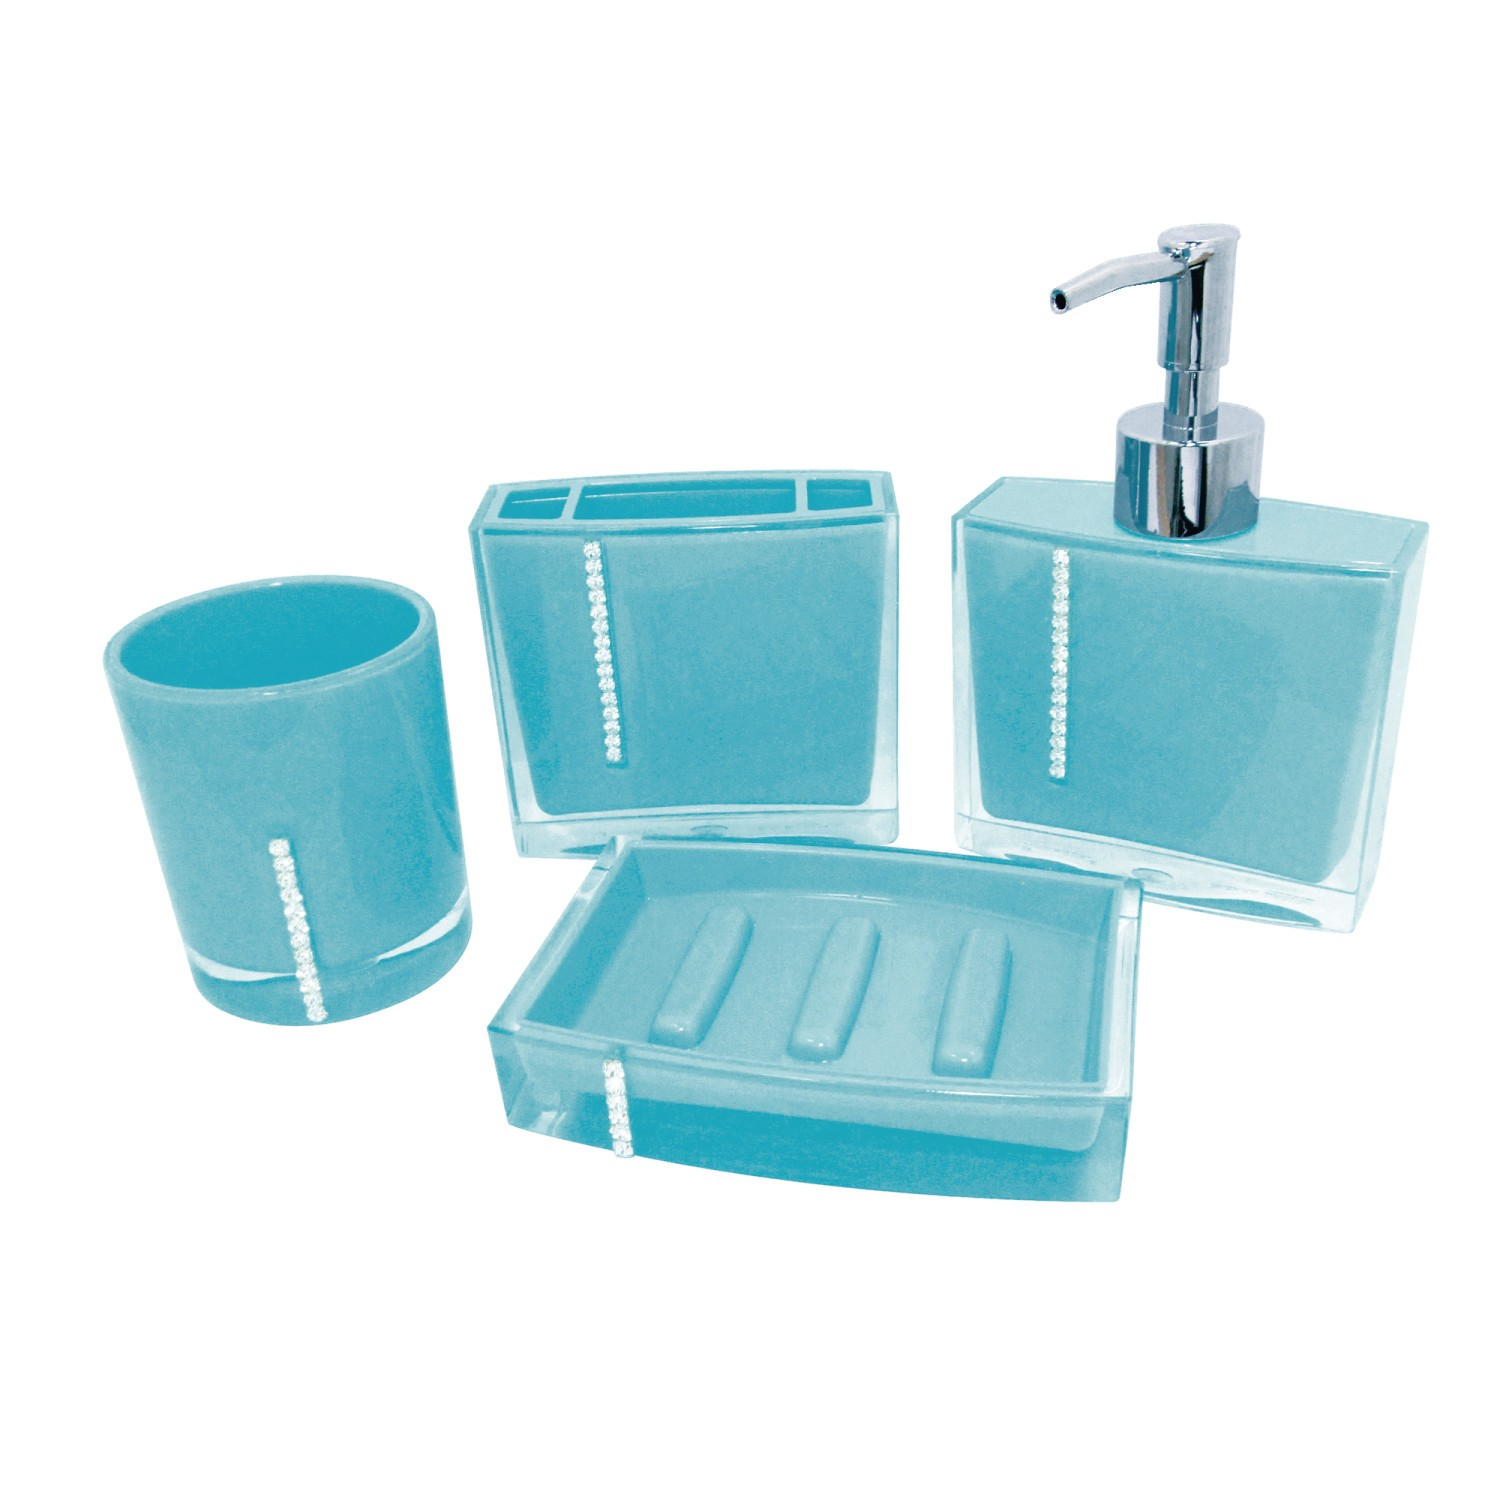 KINGSTON BRASS CBAK3141B KRYSTAL BATHWARE 4-PIECE BATH ACCESSORY SET IN TURQUOISE BLUE